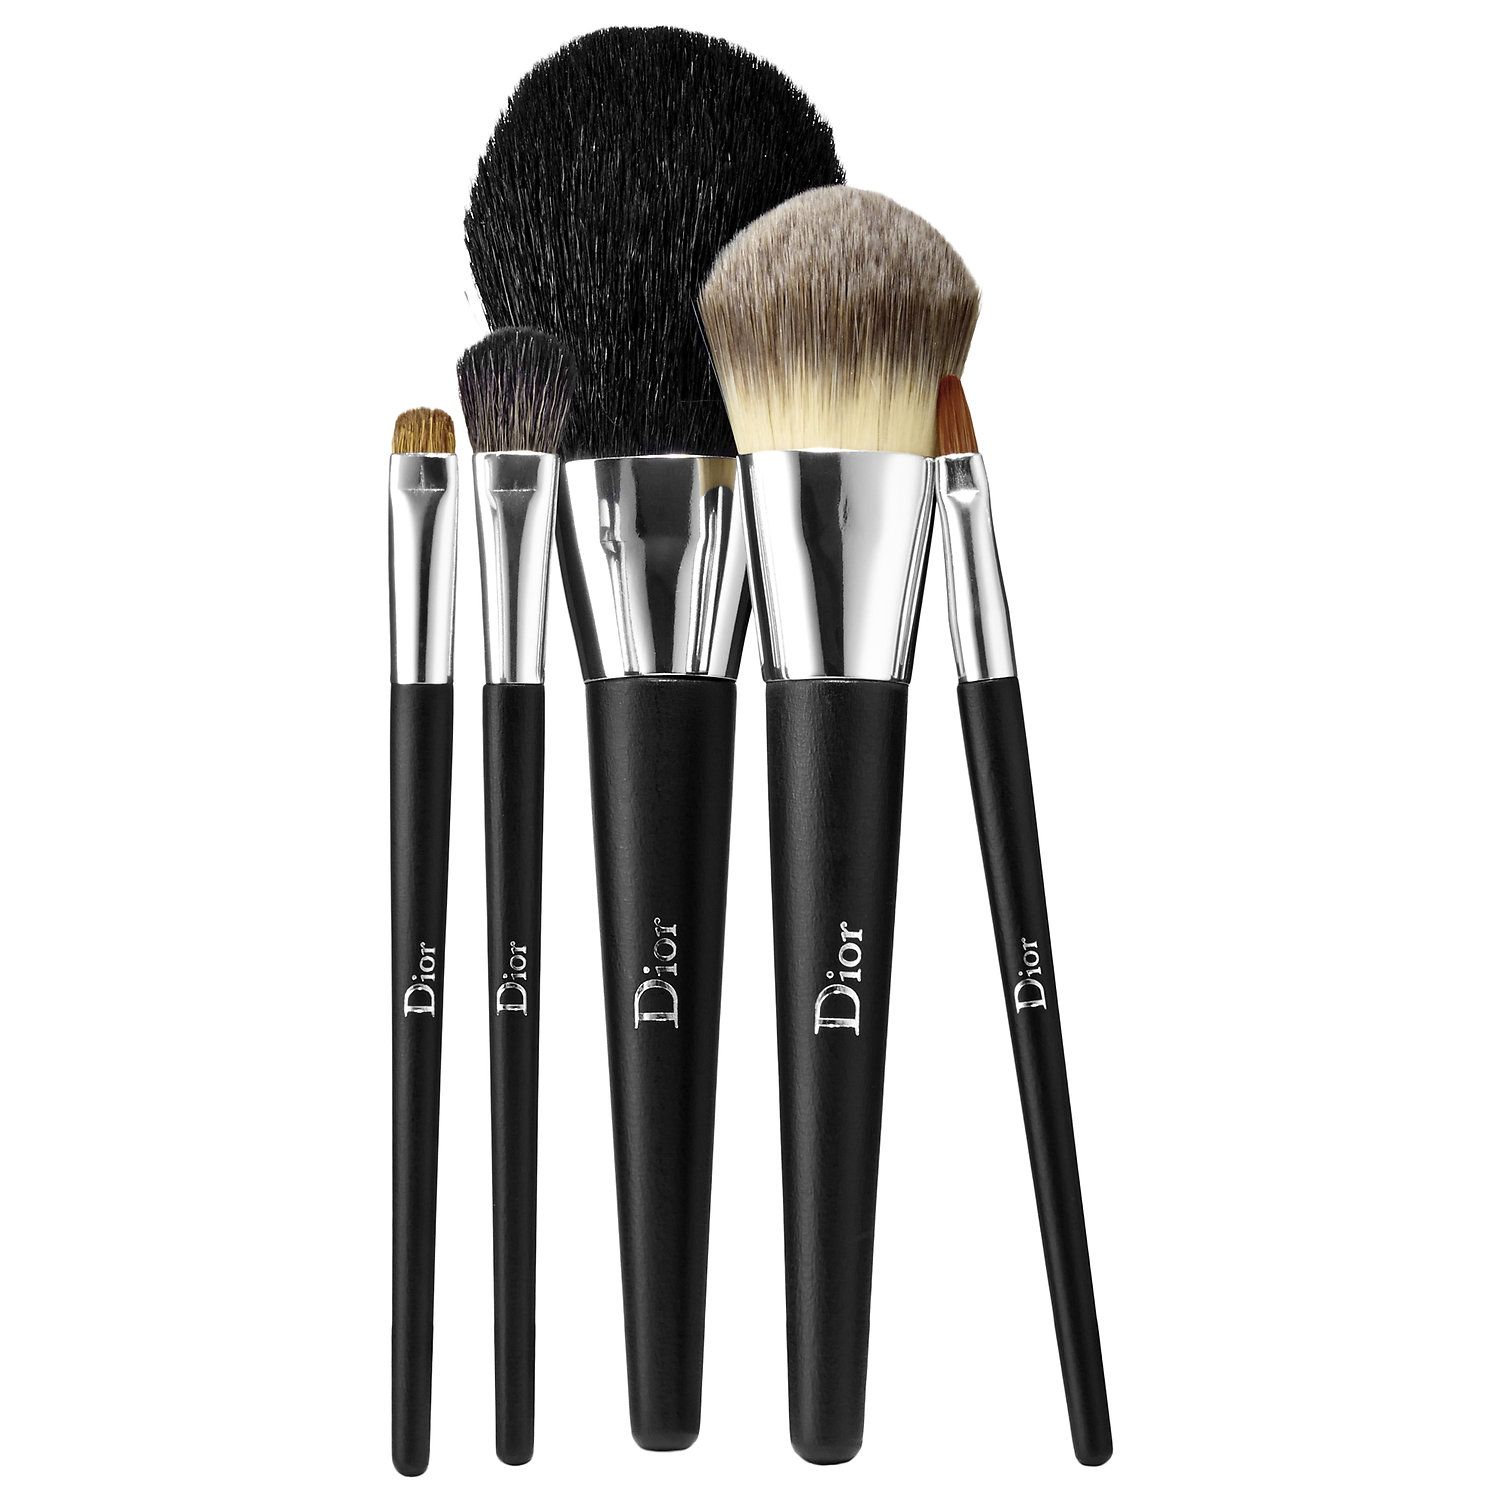 Shop Dior's Backstage Brushes Collection at Sephora. This